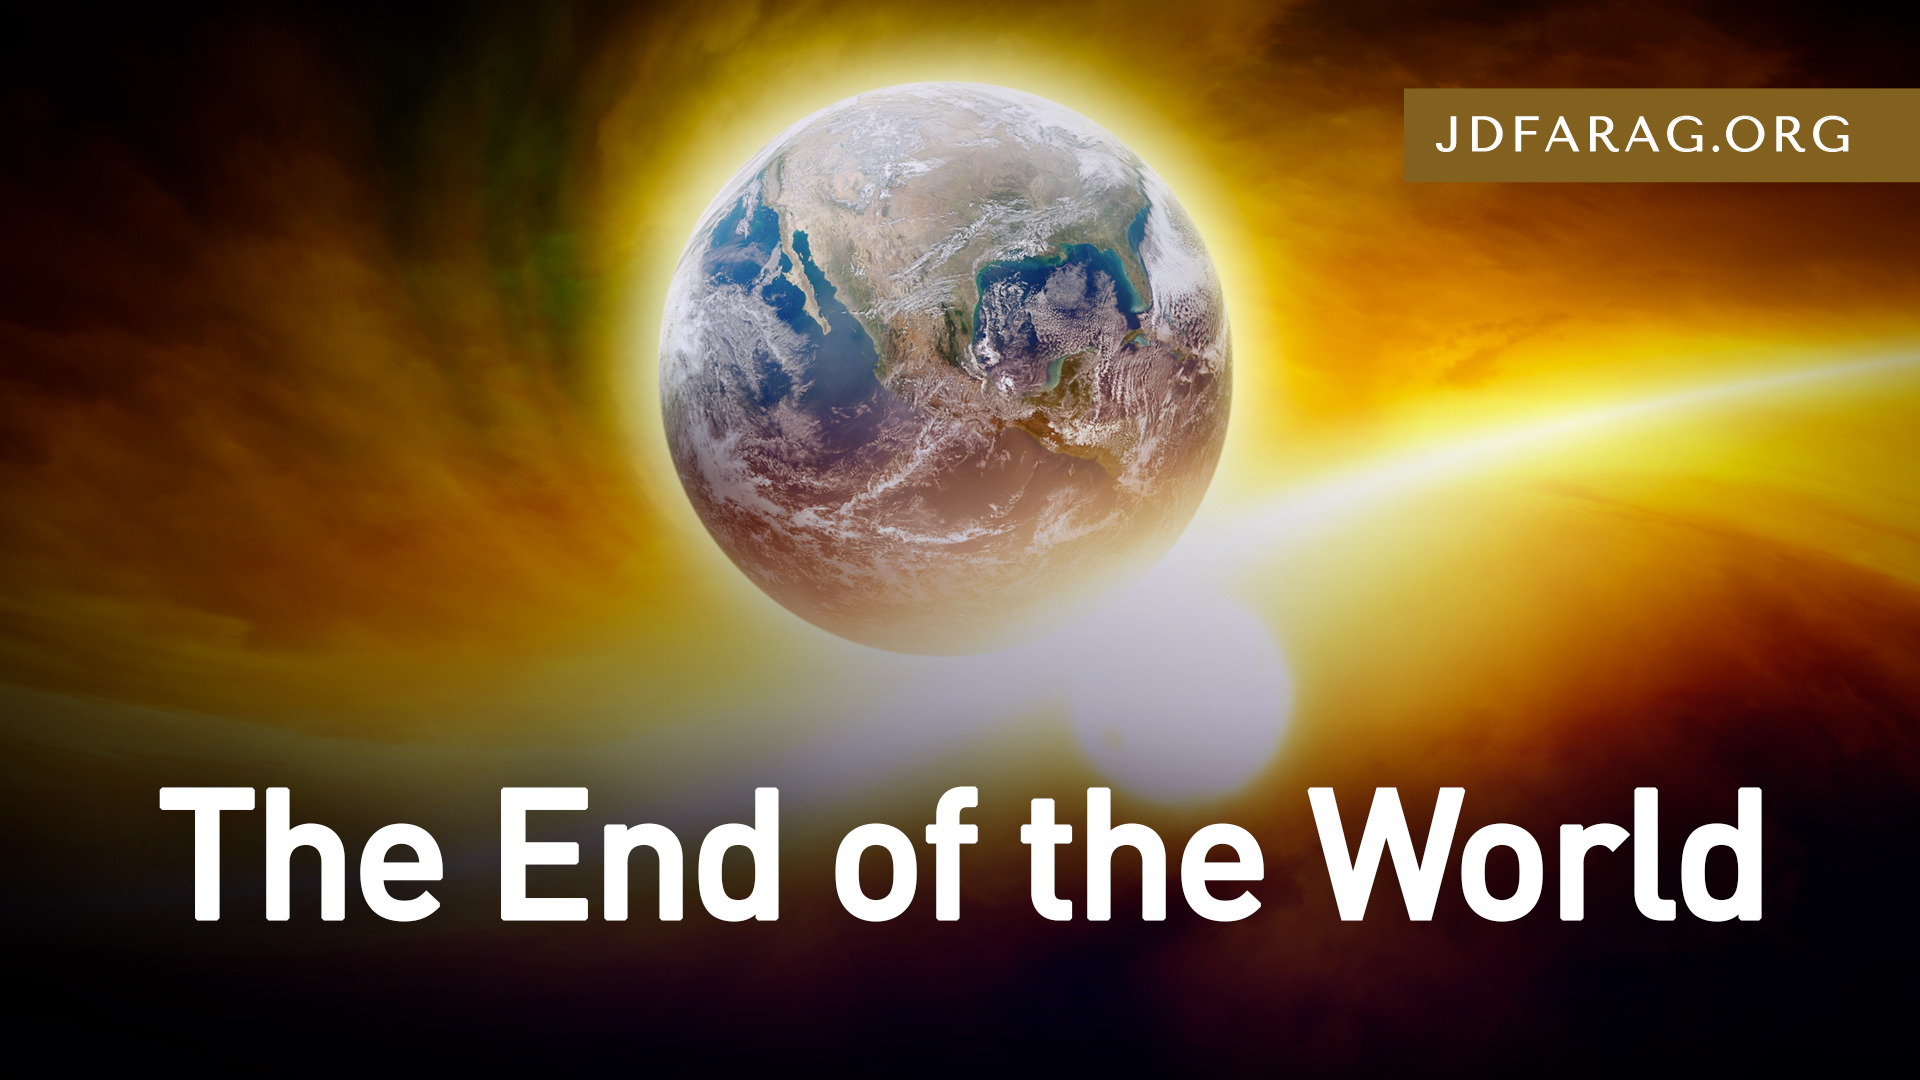 JD Farag Bible Prophecy cover image